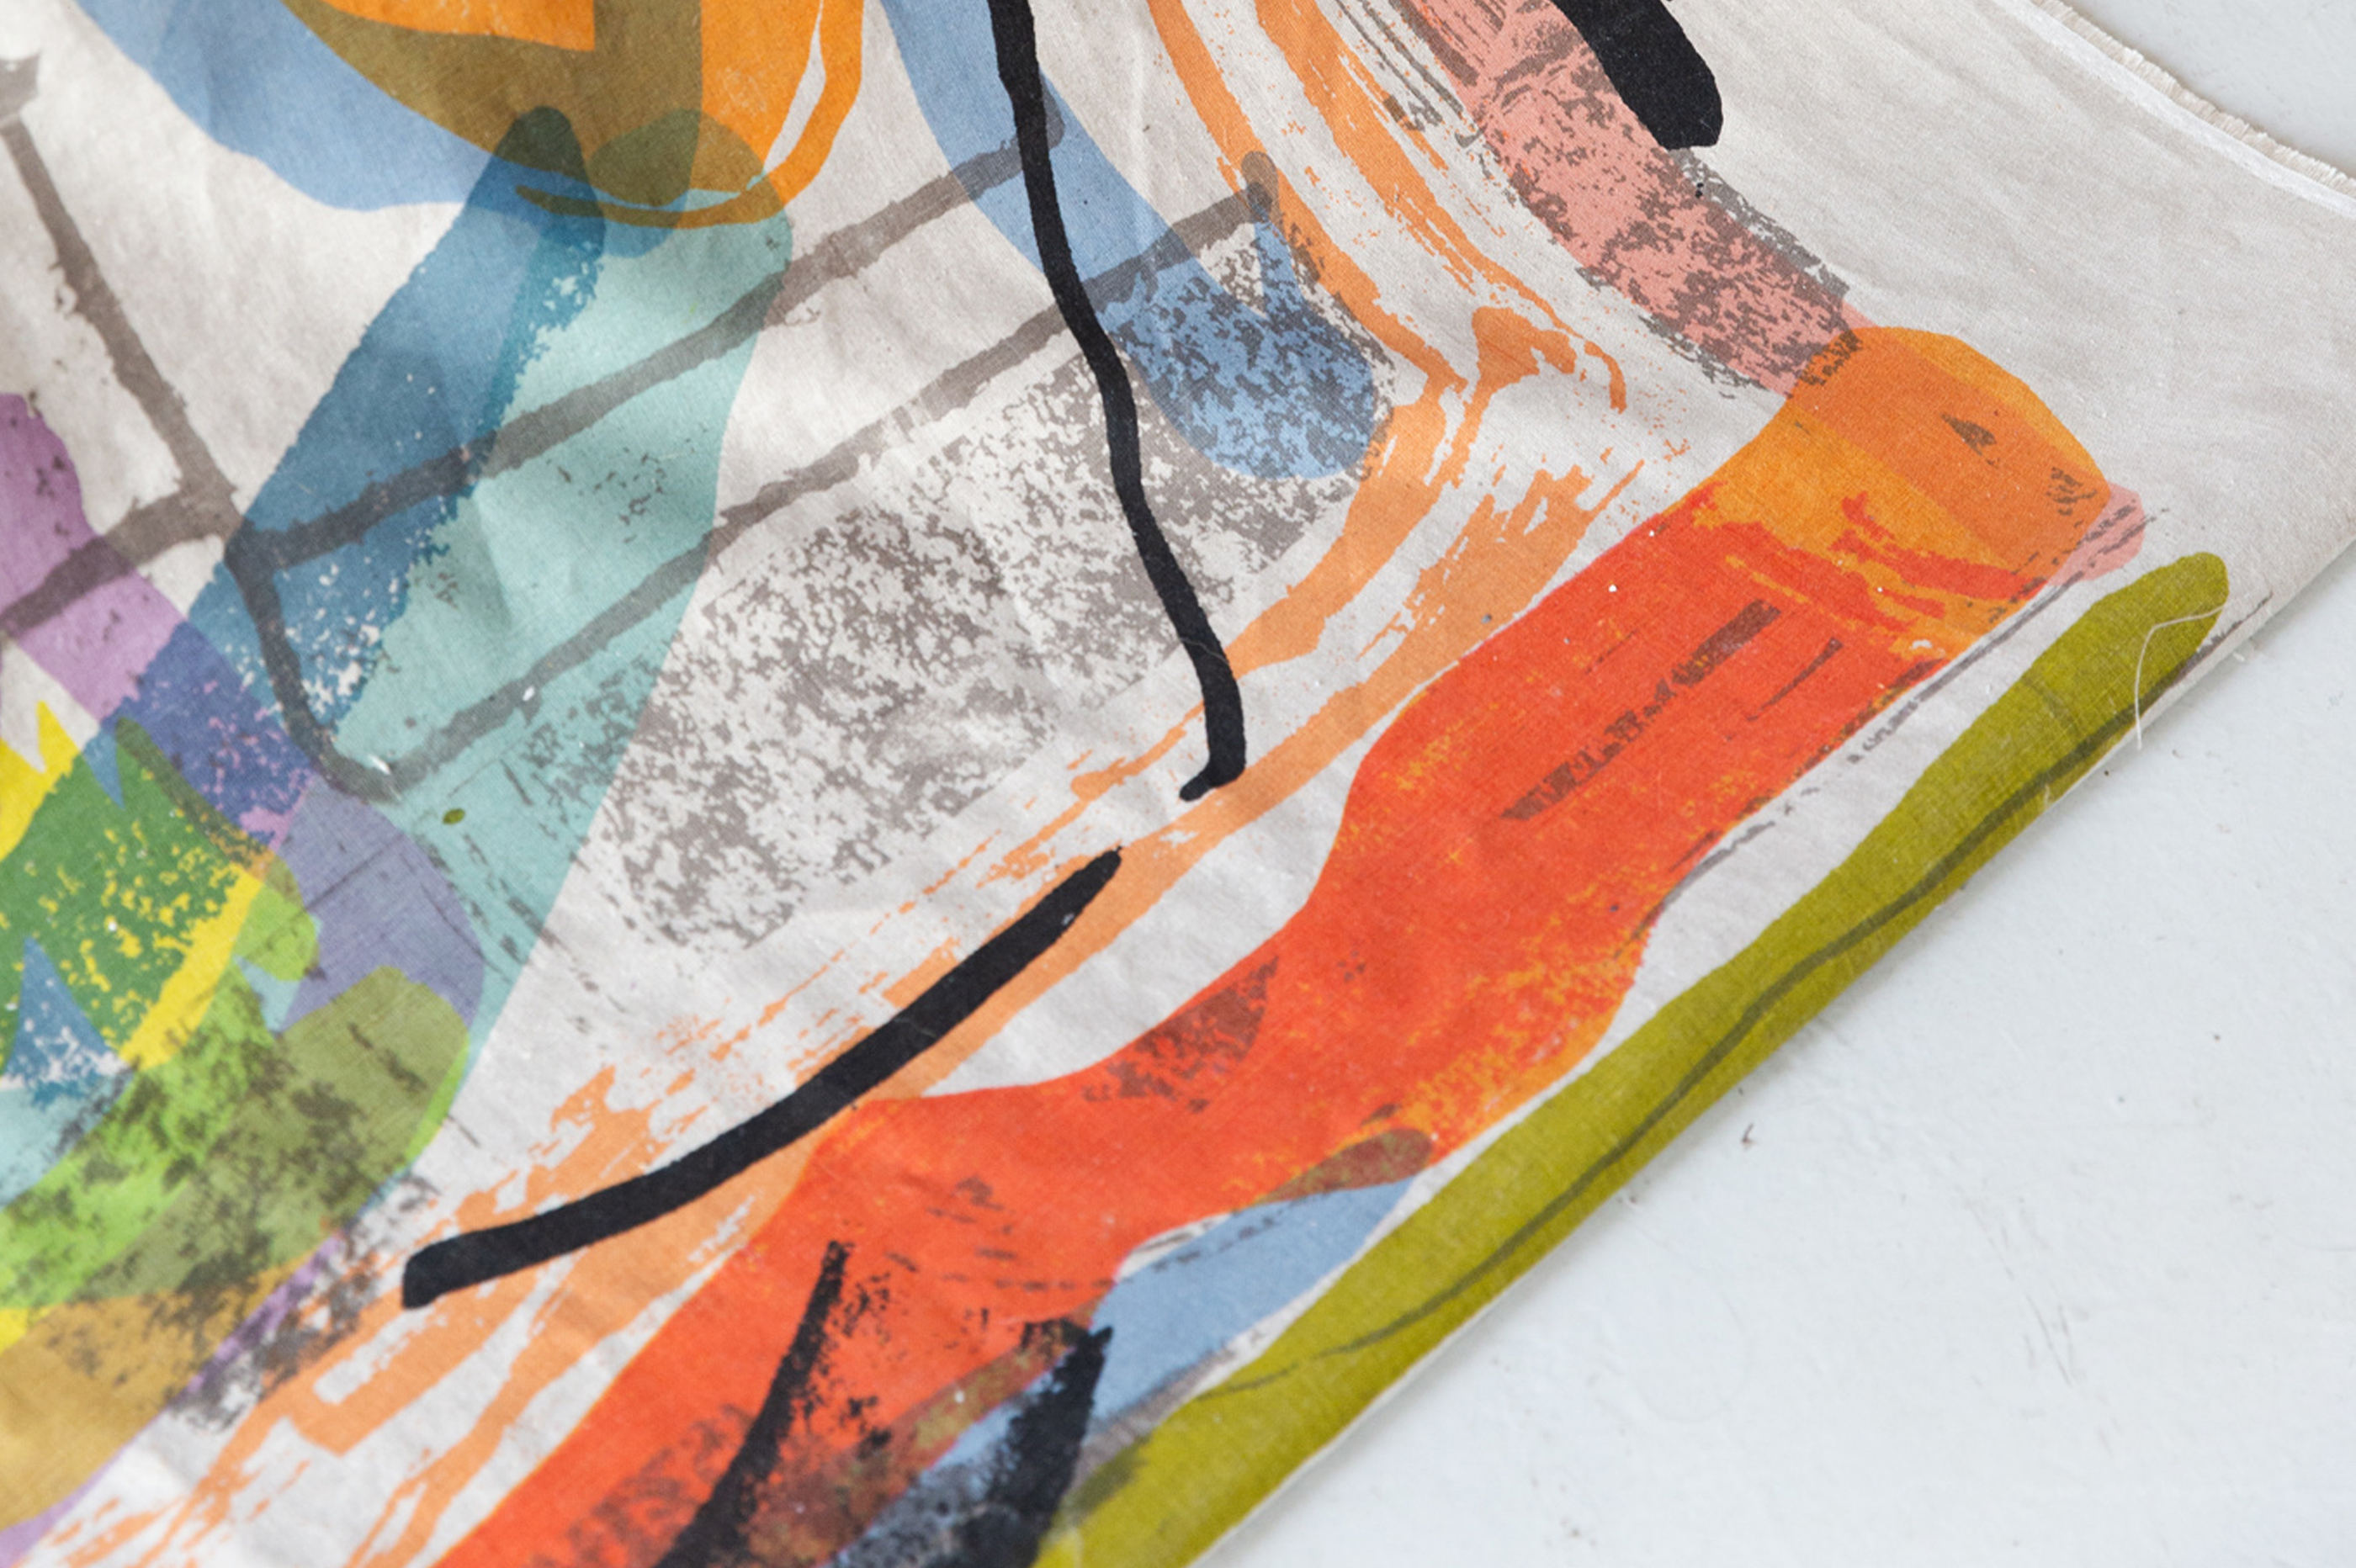 Bespoke pattern, textile surfaces and product printed by hand